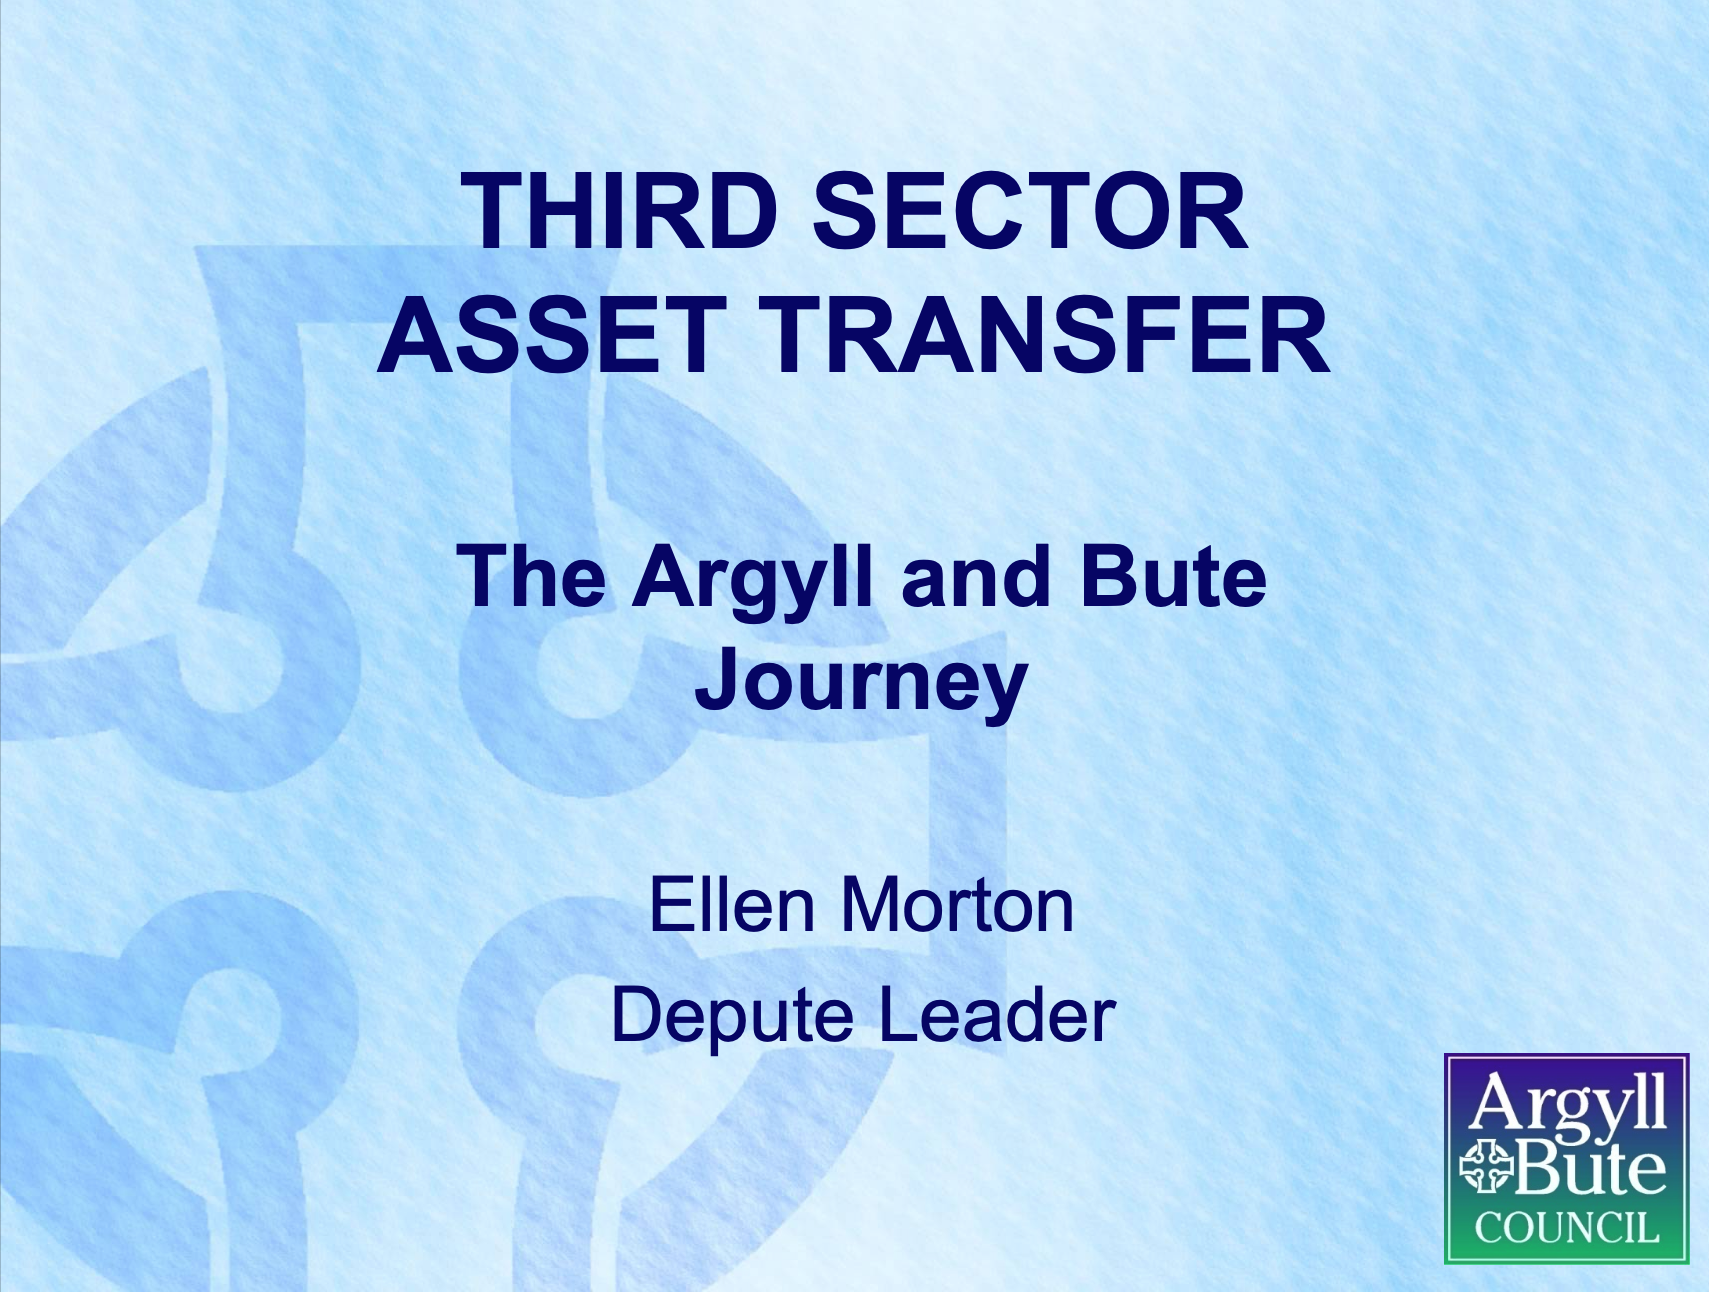 Third Sector Asset Transfer: The Argyll and Bute Journey